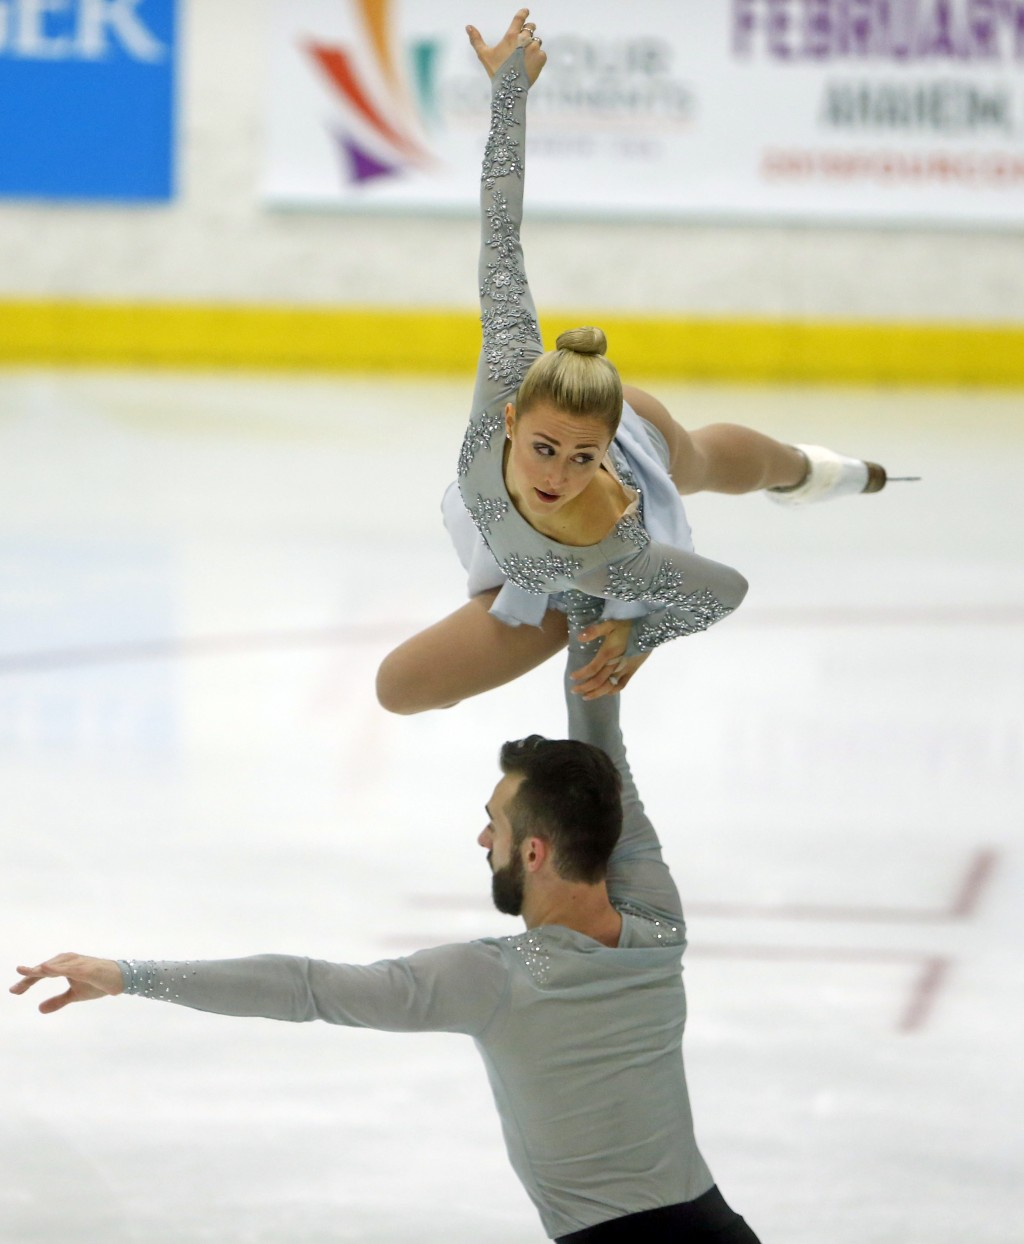 Ashley Cain and Timothy Leduc, of the United States, perform during the pairs free skate at the U.S. International Figure Skating Classic, Friday, Sep